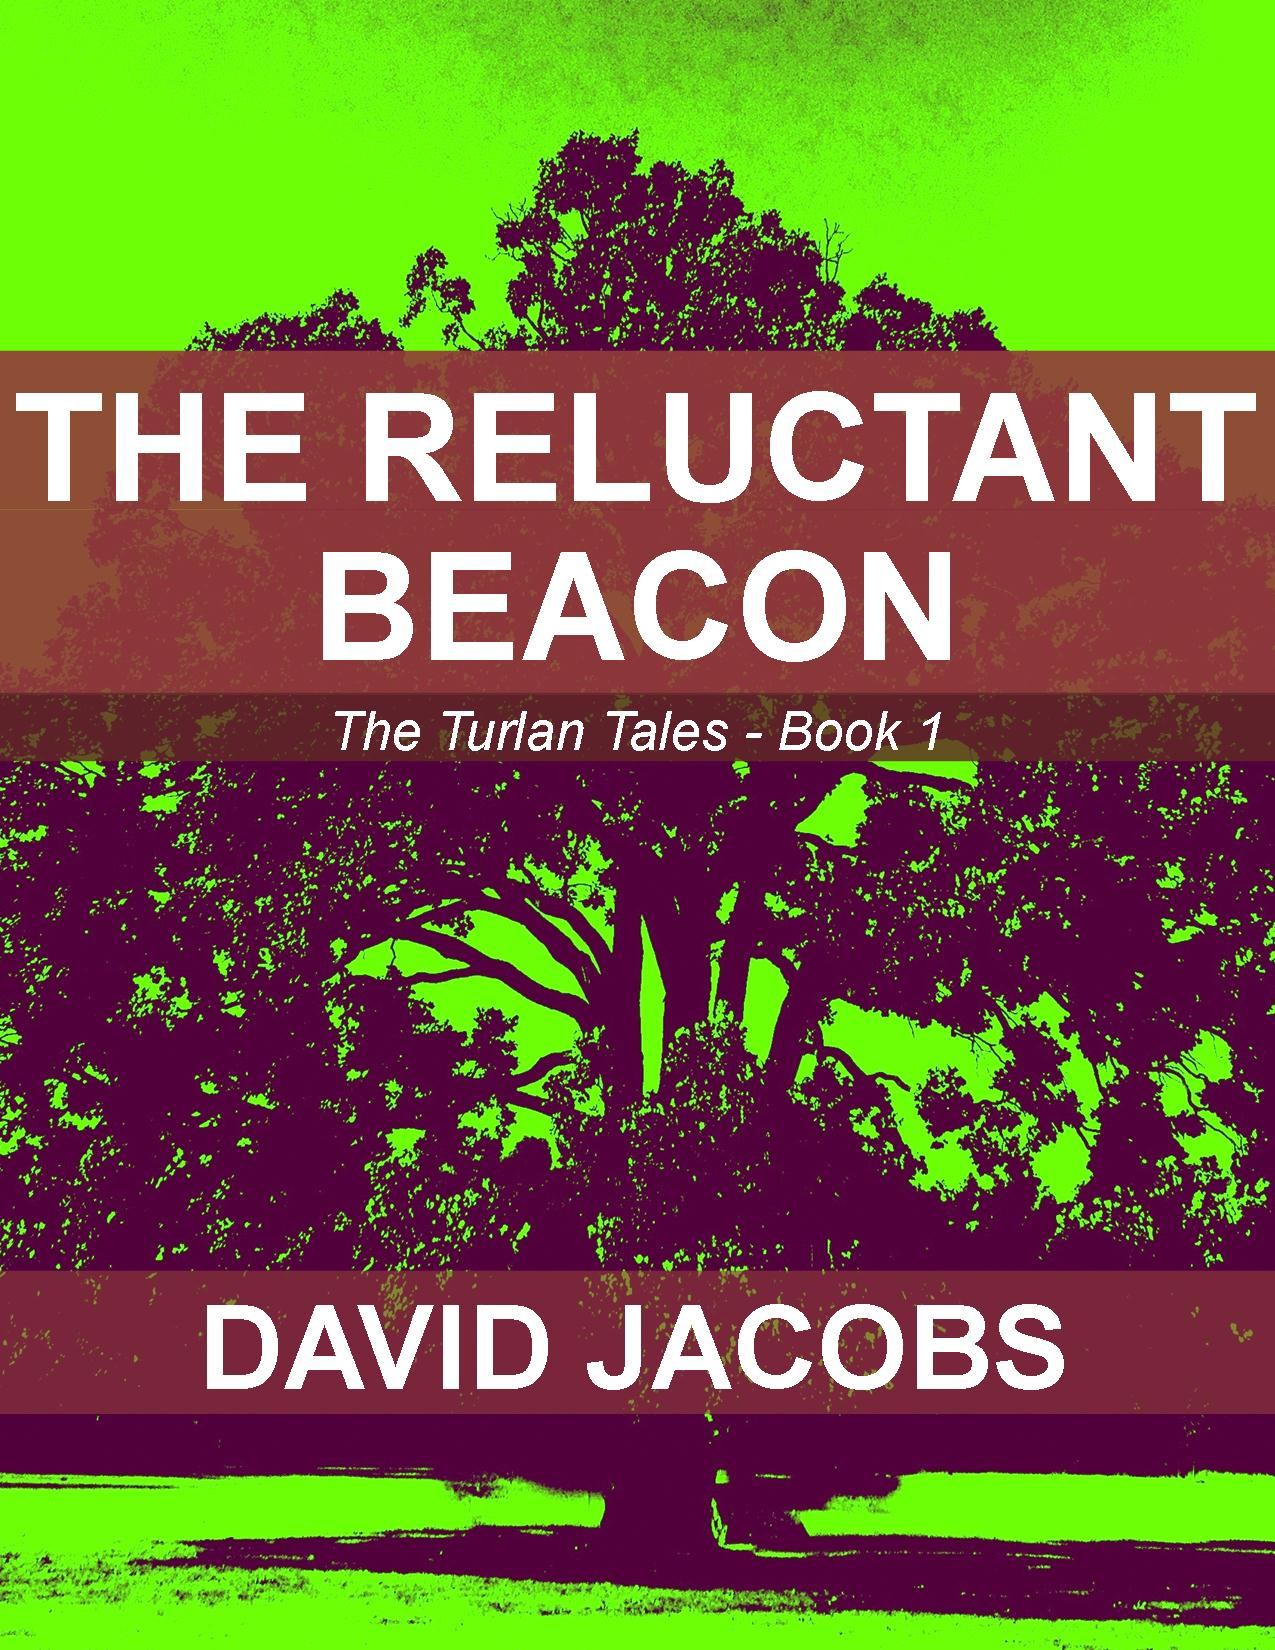 THE RELUCTANT BEACON